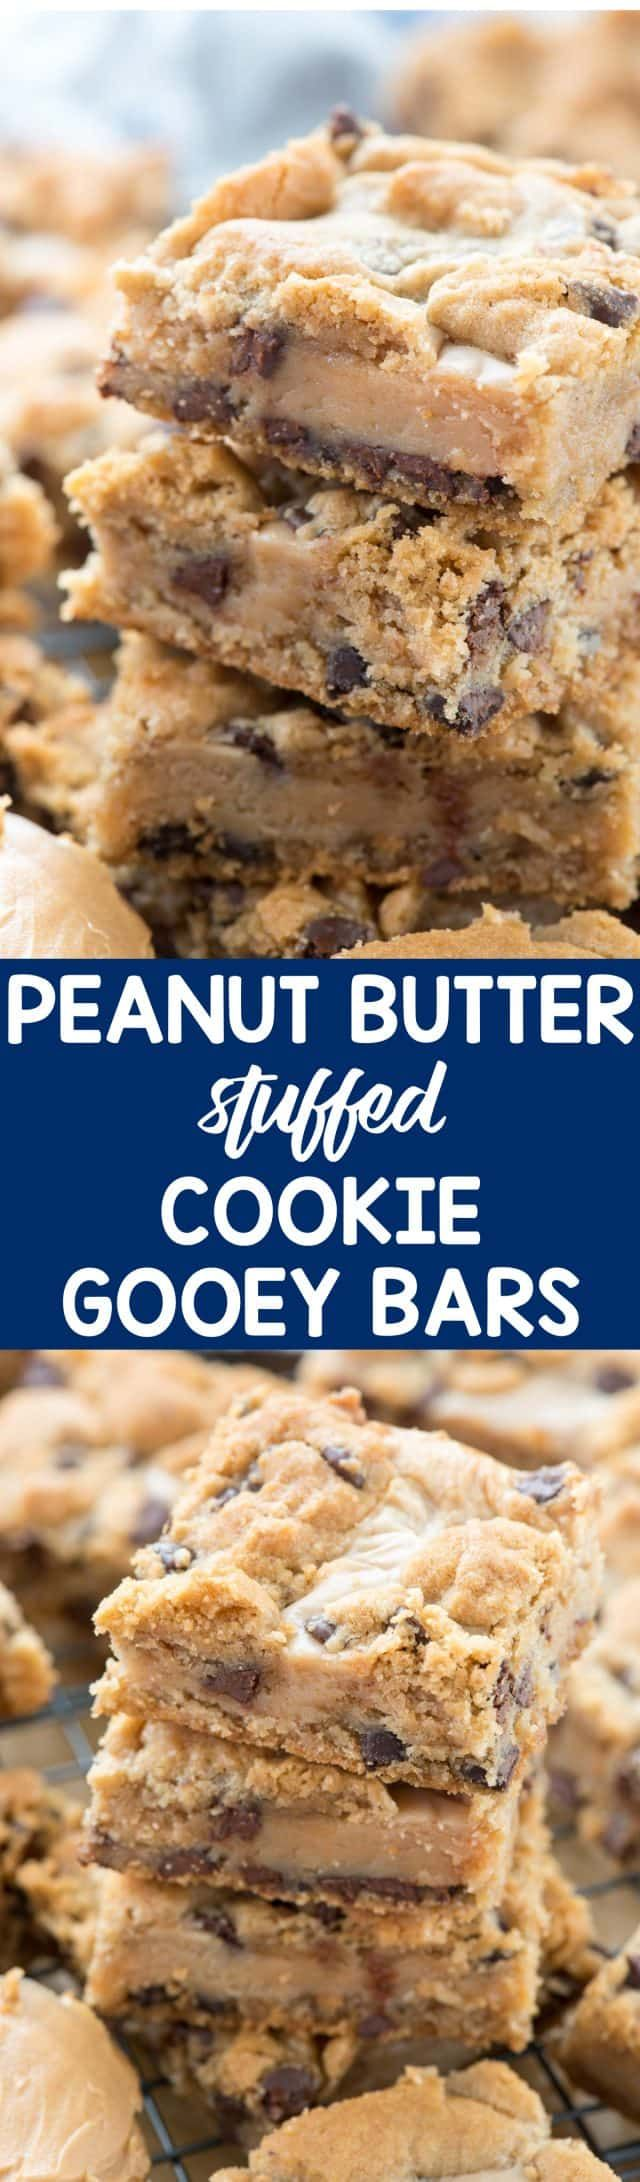 Gooey Peanut Butter Chocolate Chip Cookie Bars - Crazy for Crust